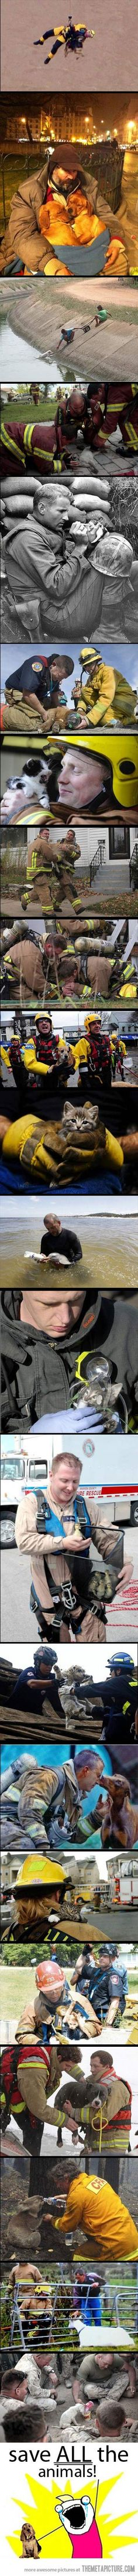 Animals Being Rescued…